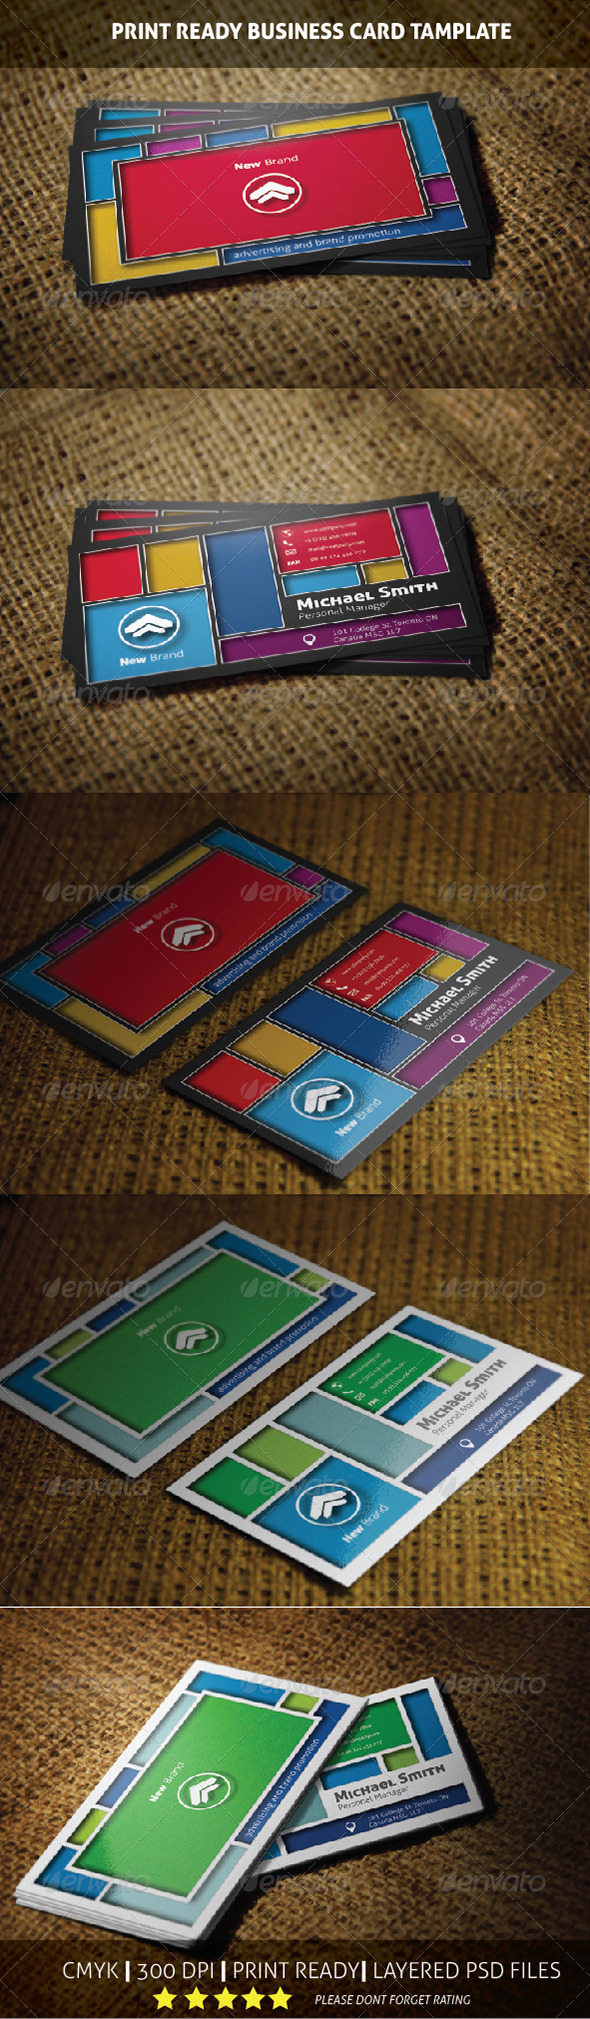 New Brand Creative Business Card Template - Creative Business Cards